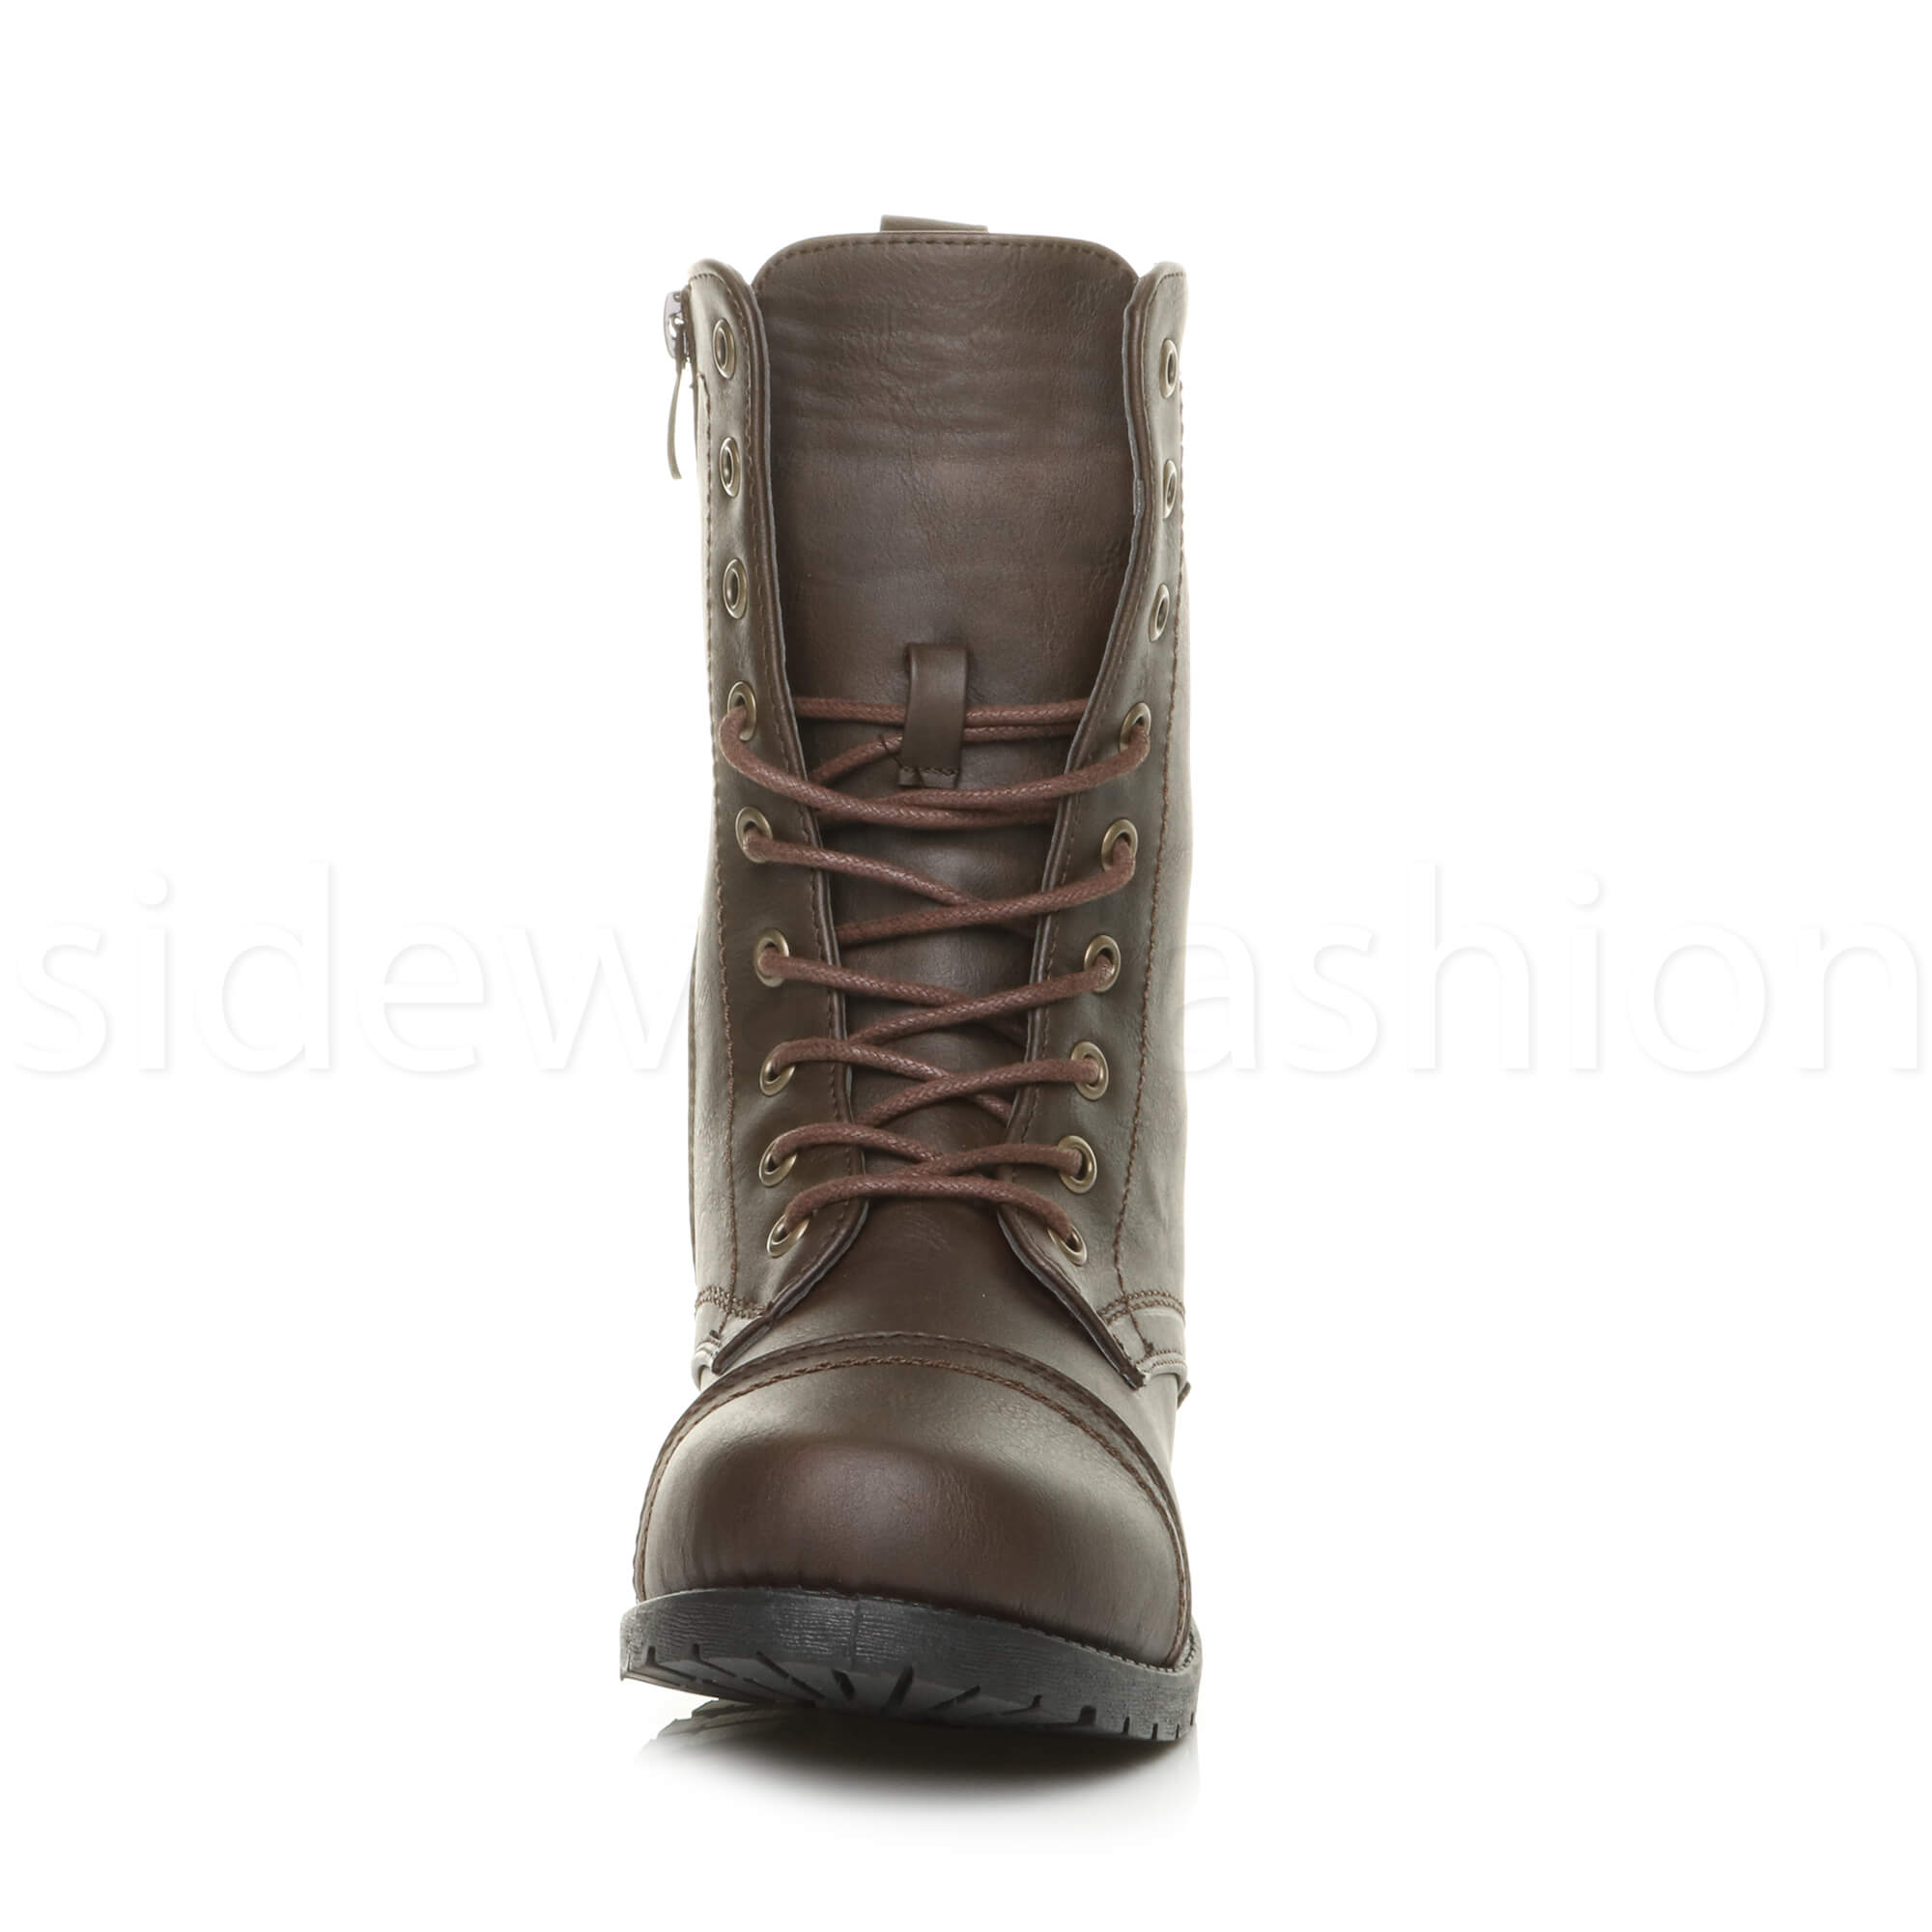 Womens-ladies-low-heel-flat-lace-up-zip-combat-biker-military-ankle-boots-size thumbnail 79